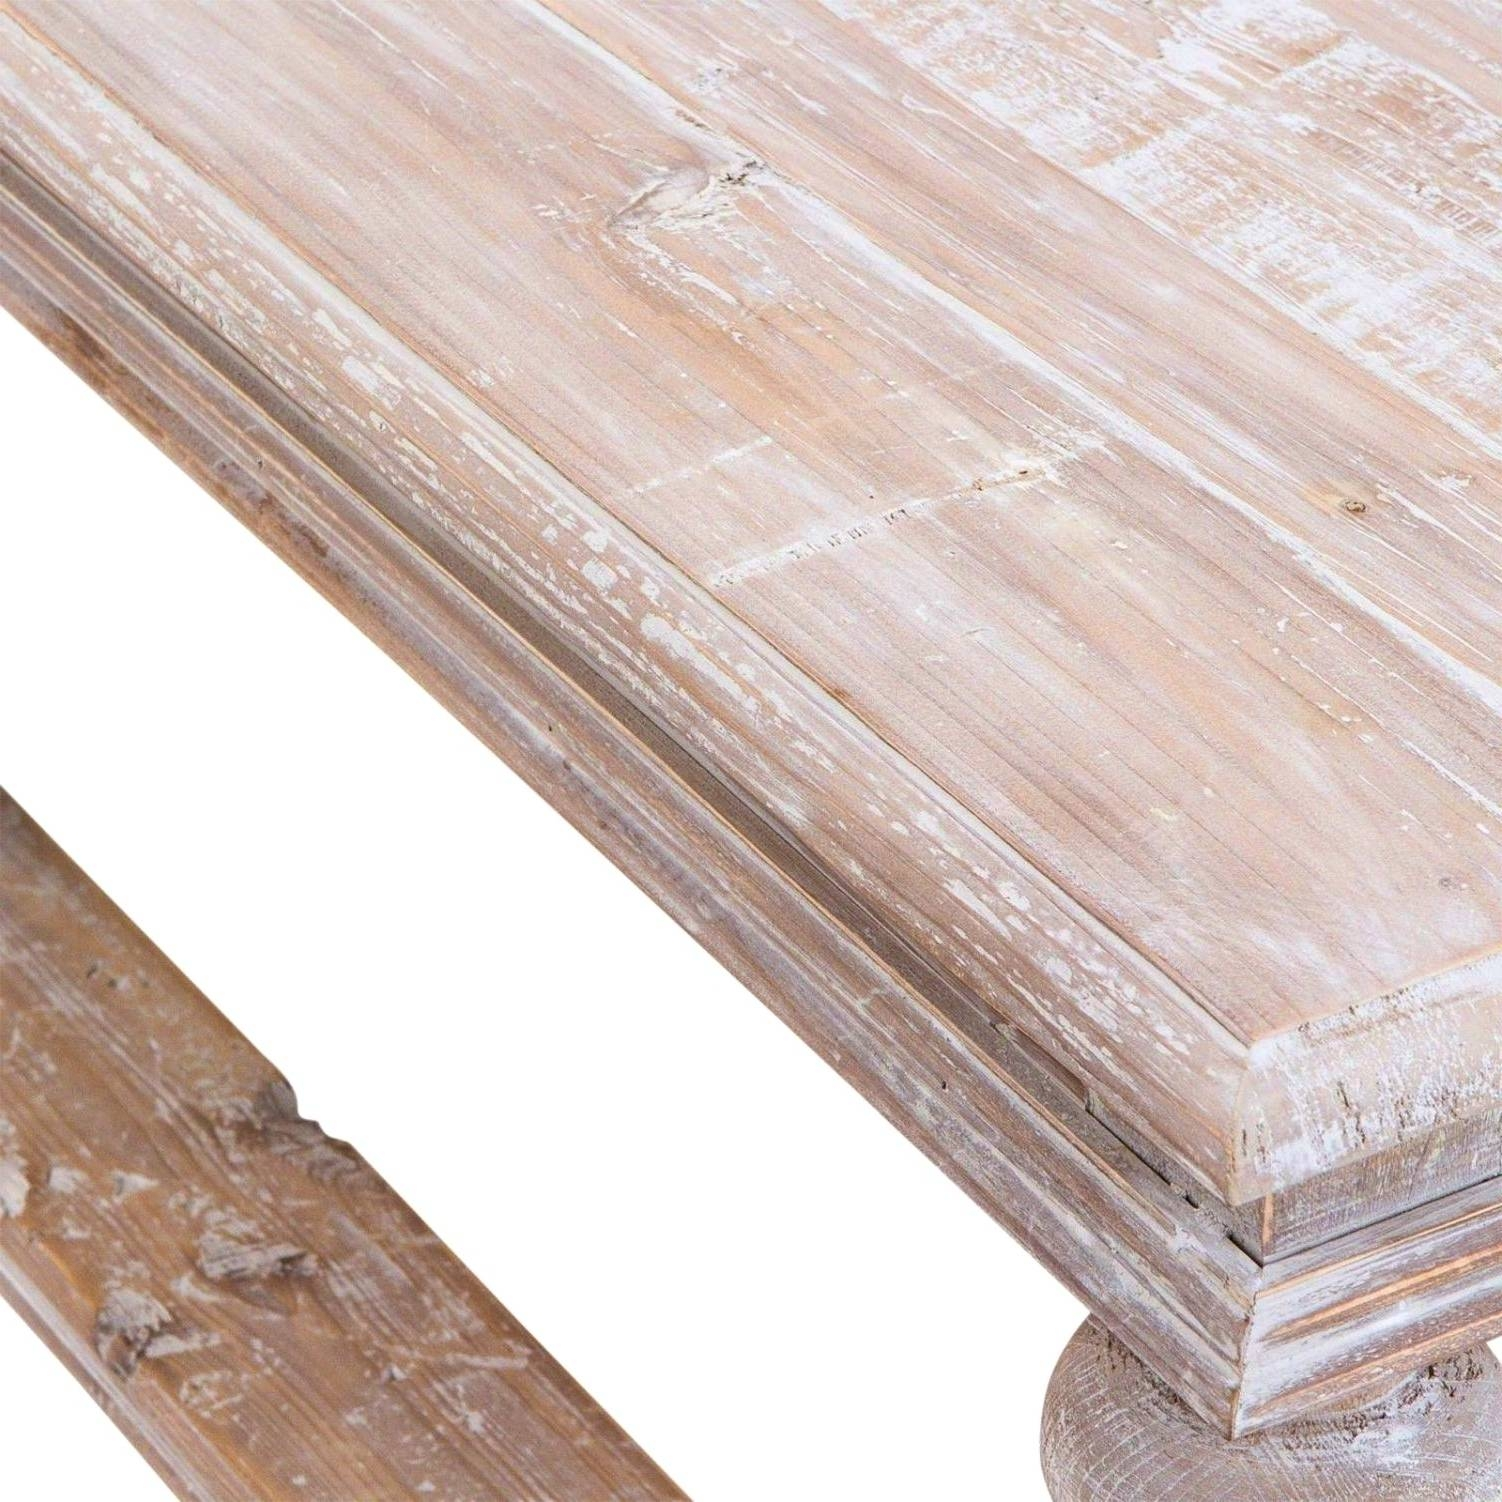 Coffee Table : Impressive Grey Wash Coffee Table Gray Wood Coffee inside Grey Wash Wood Coffee Tables (Image 13 of 30)